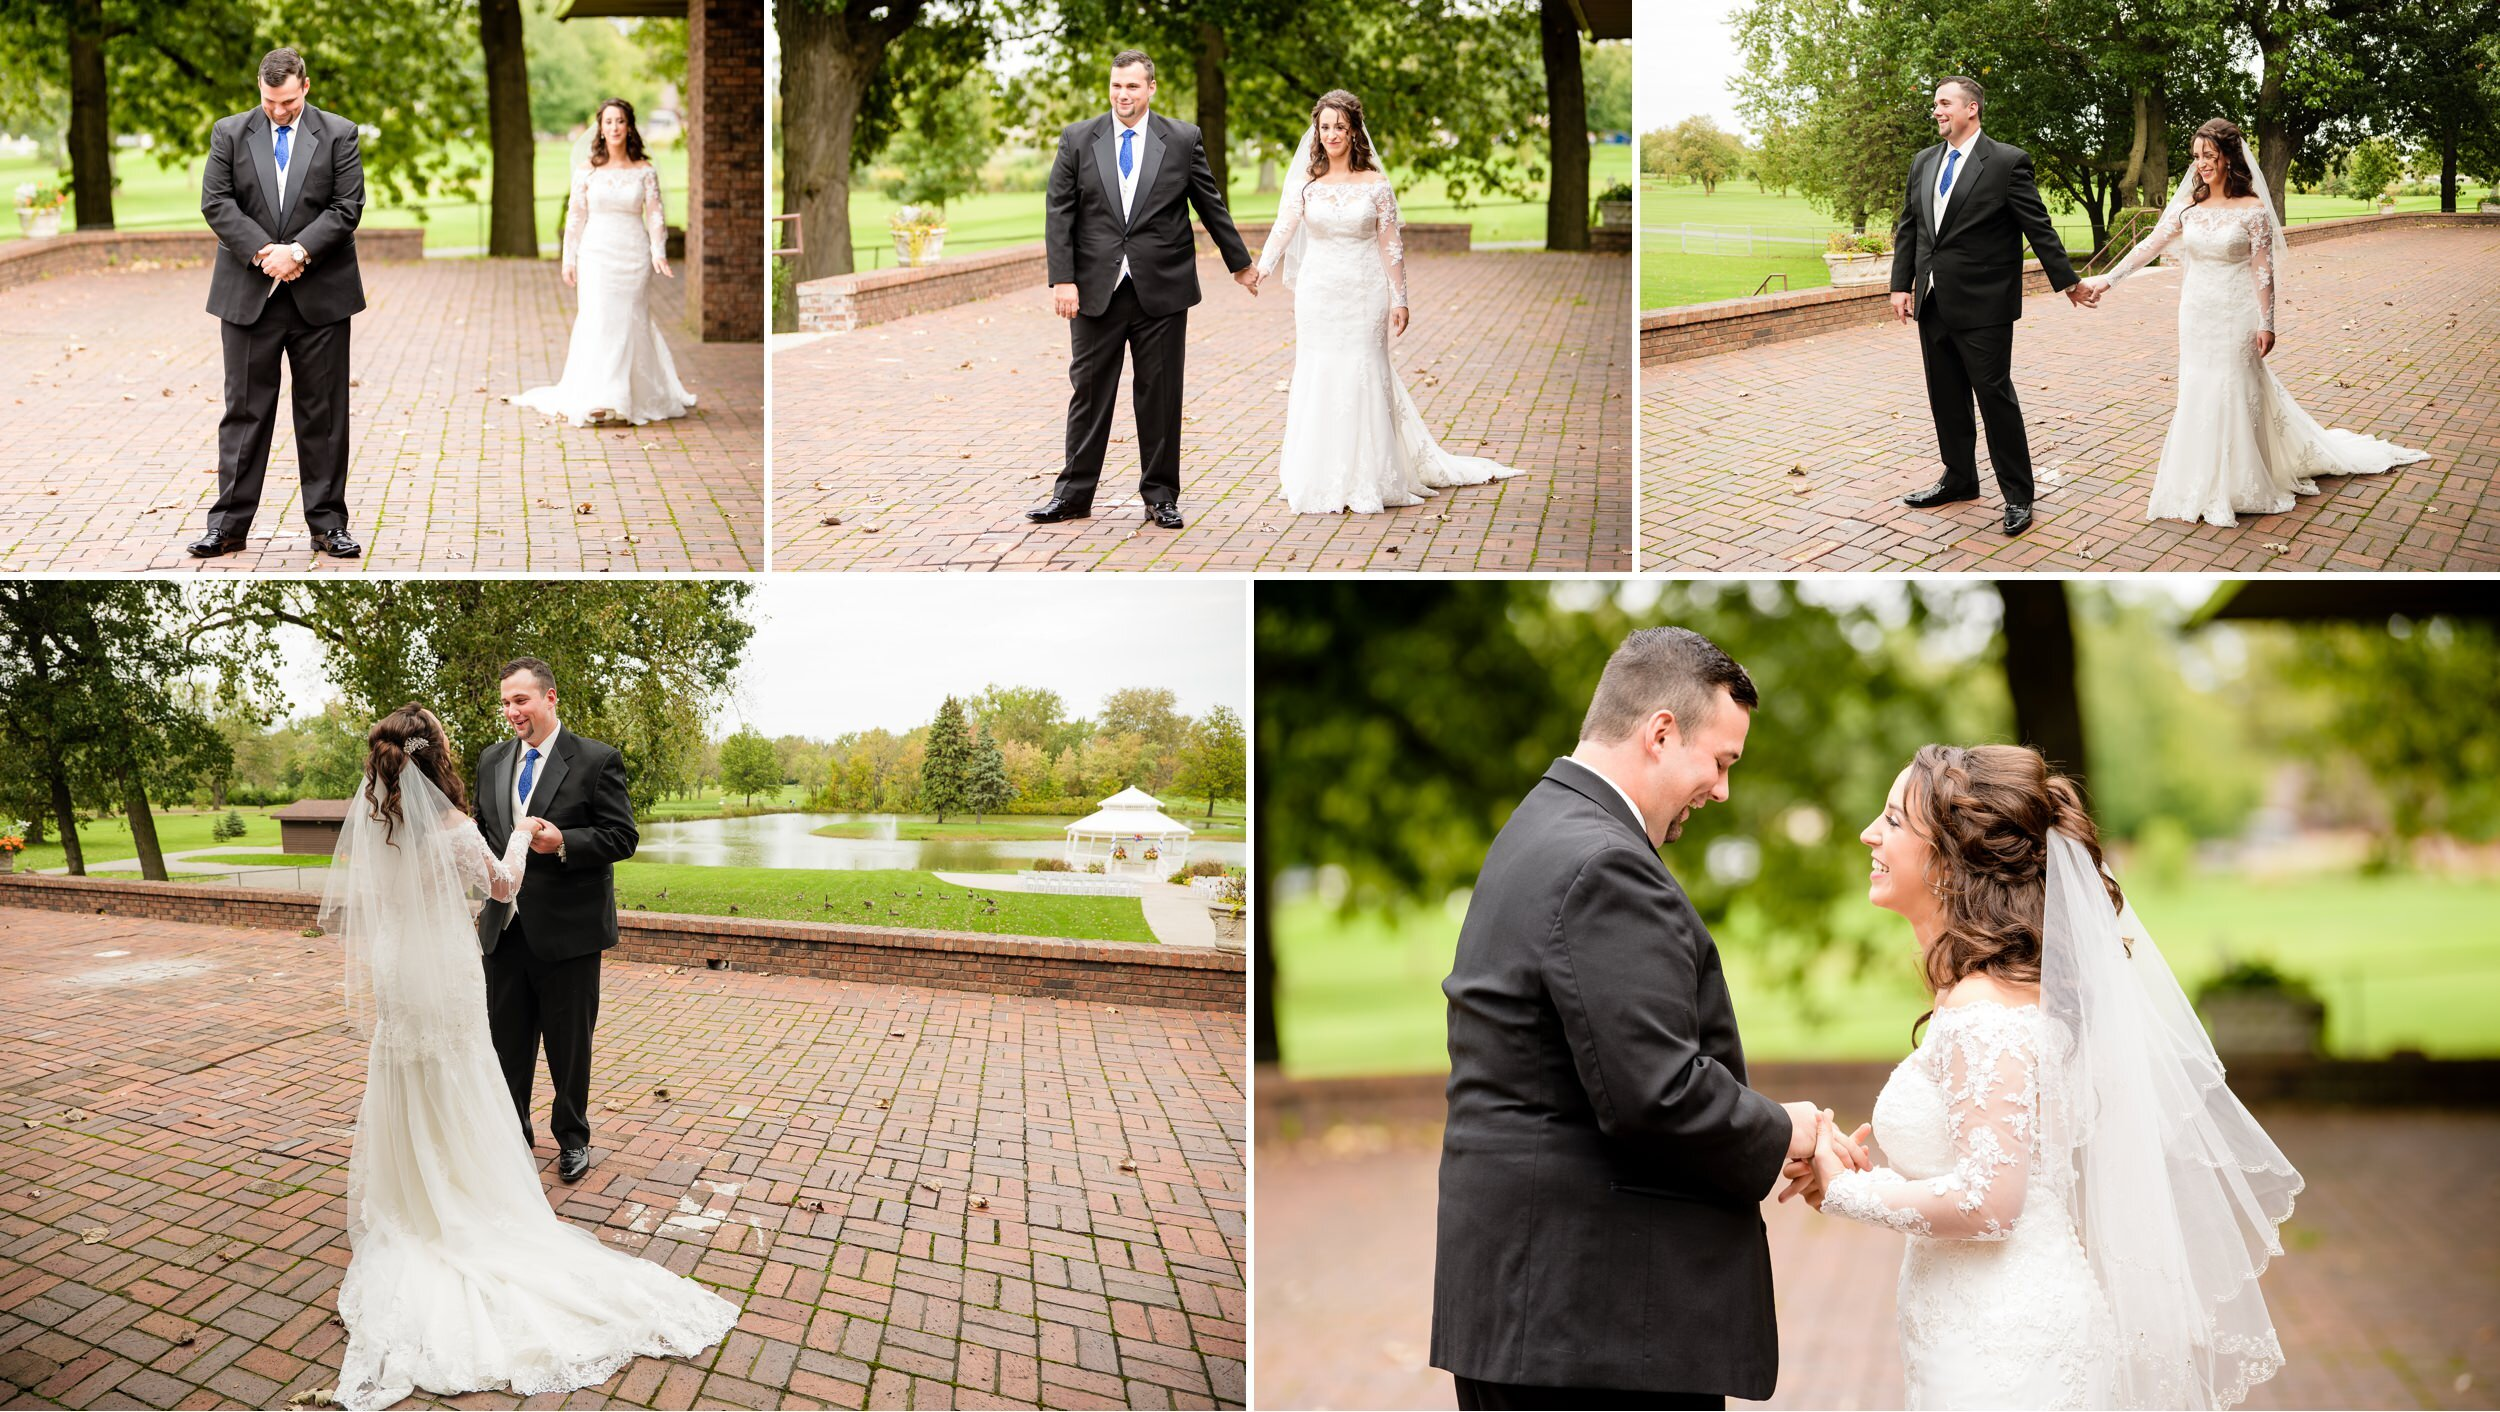 First look for the bride and groom at Wicker Park in Highland, Indiana.